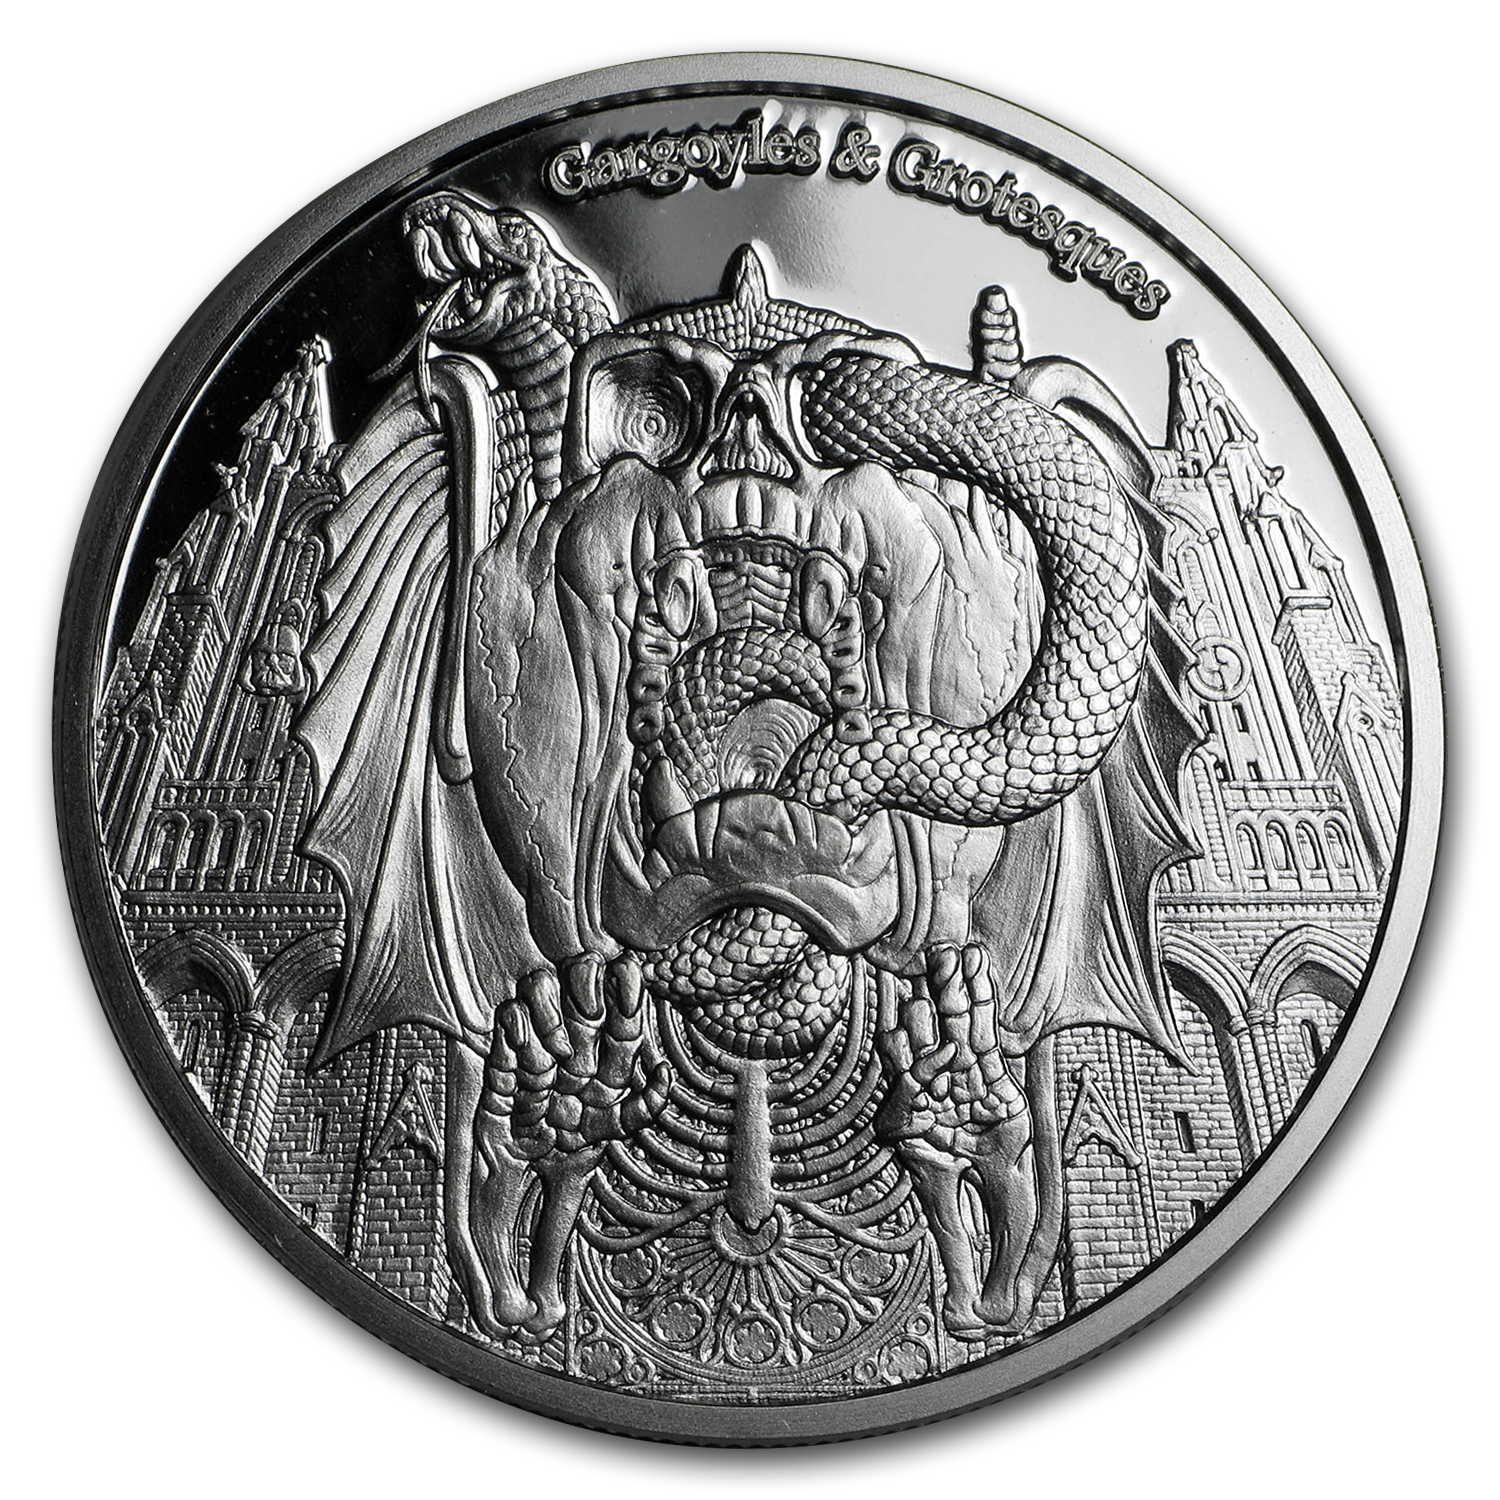 2017 Chad 1 oz Proof Silver Gargoyles and Grotesques (Decay)